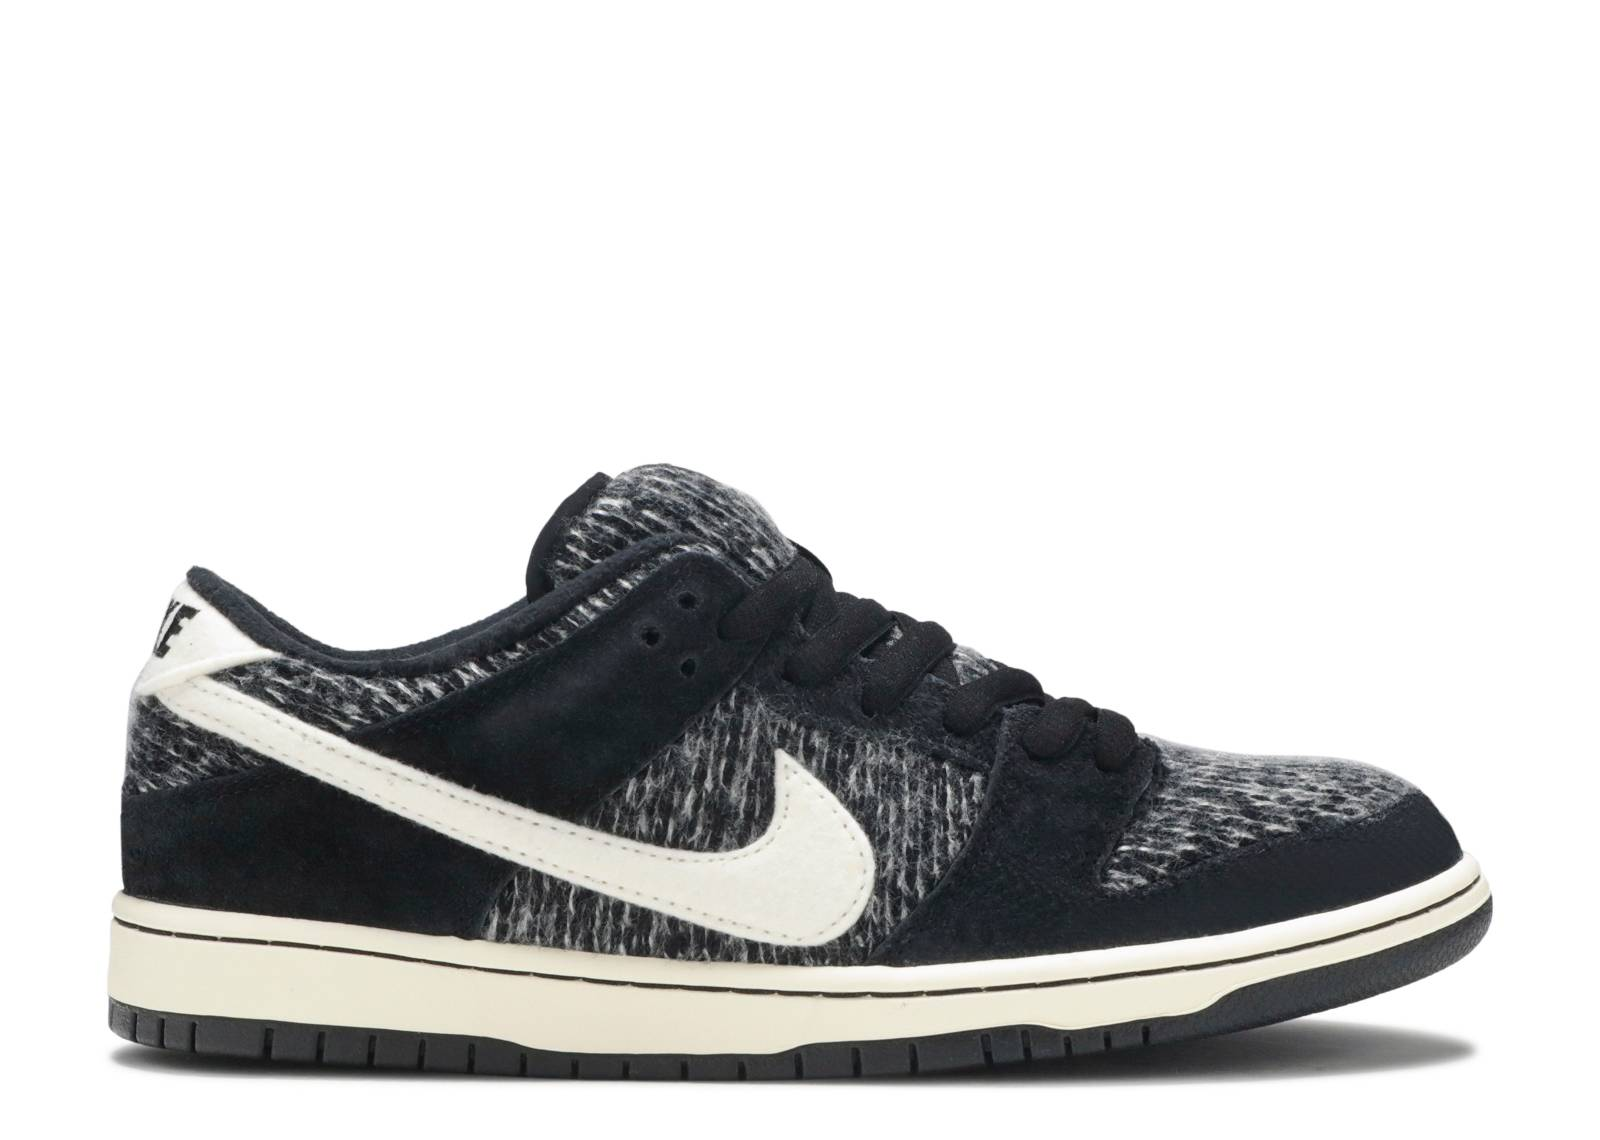 dunk low warmth